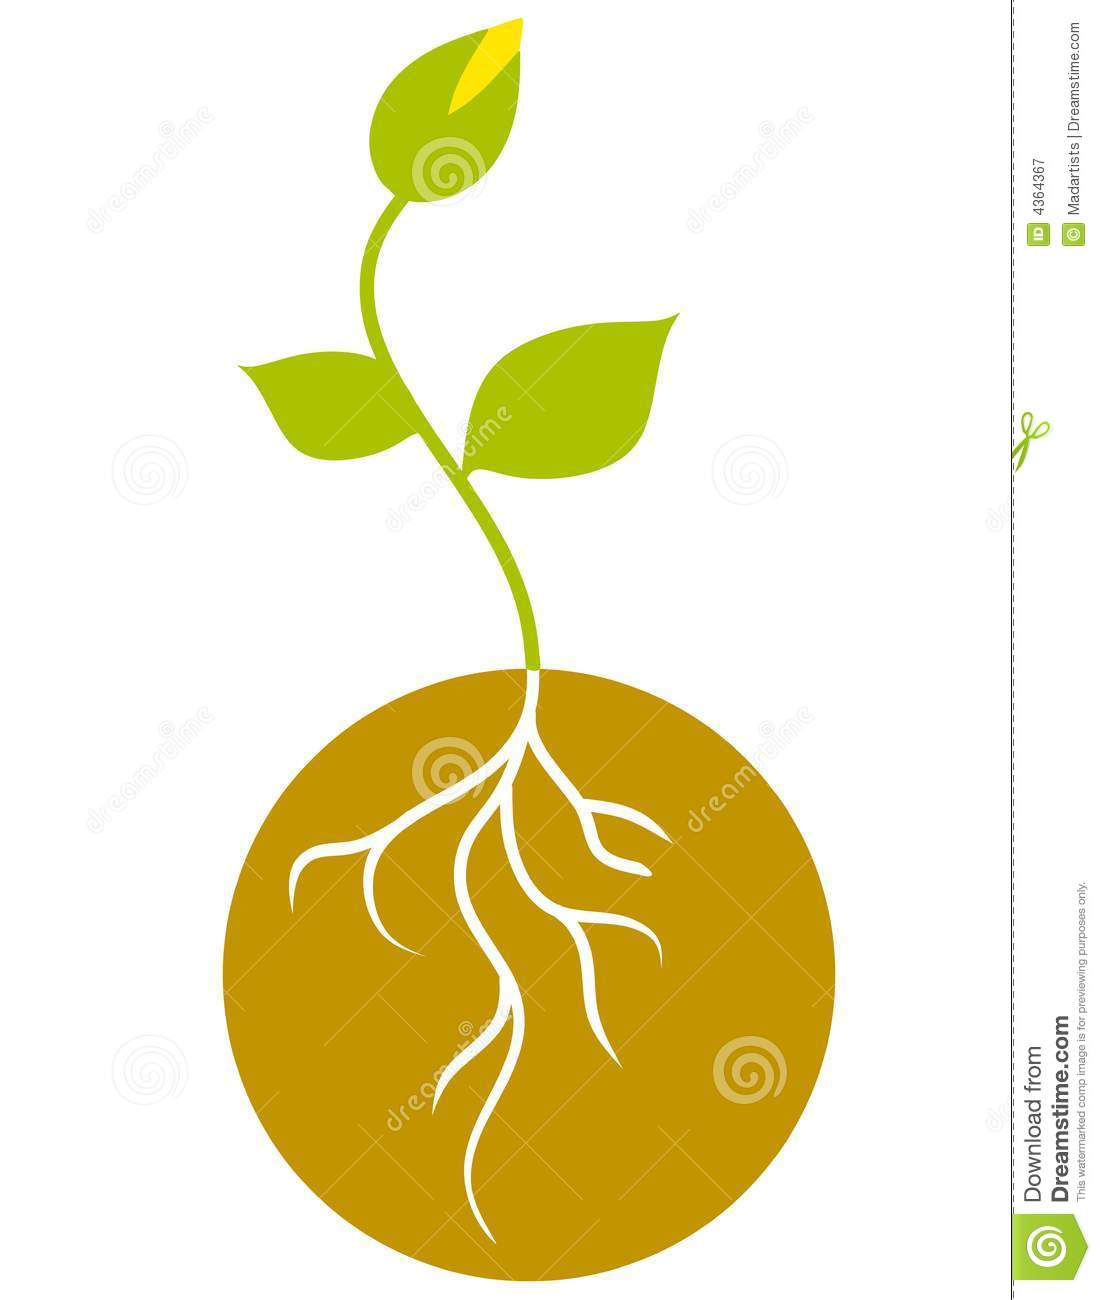 Green Seedling With Roots Royalty Free Stock Photography.